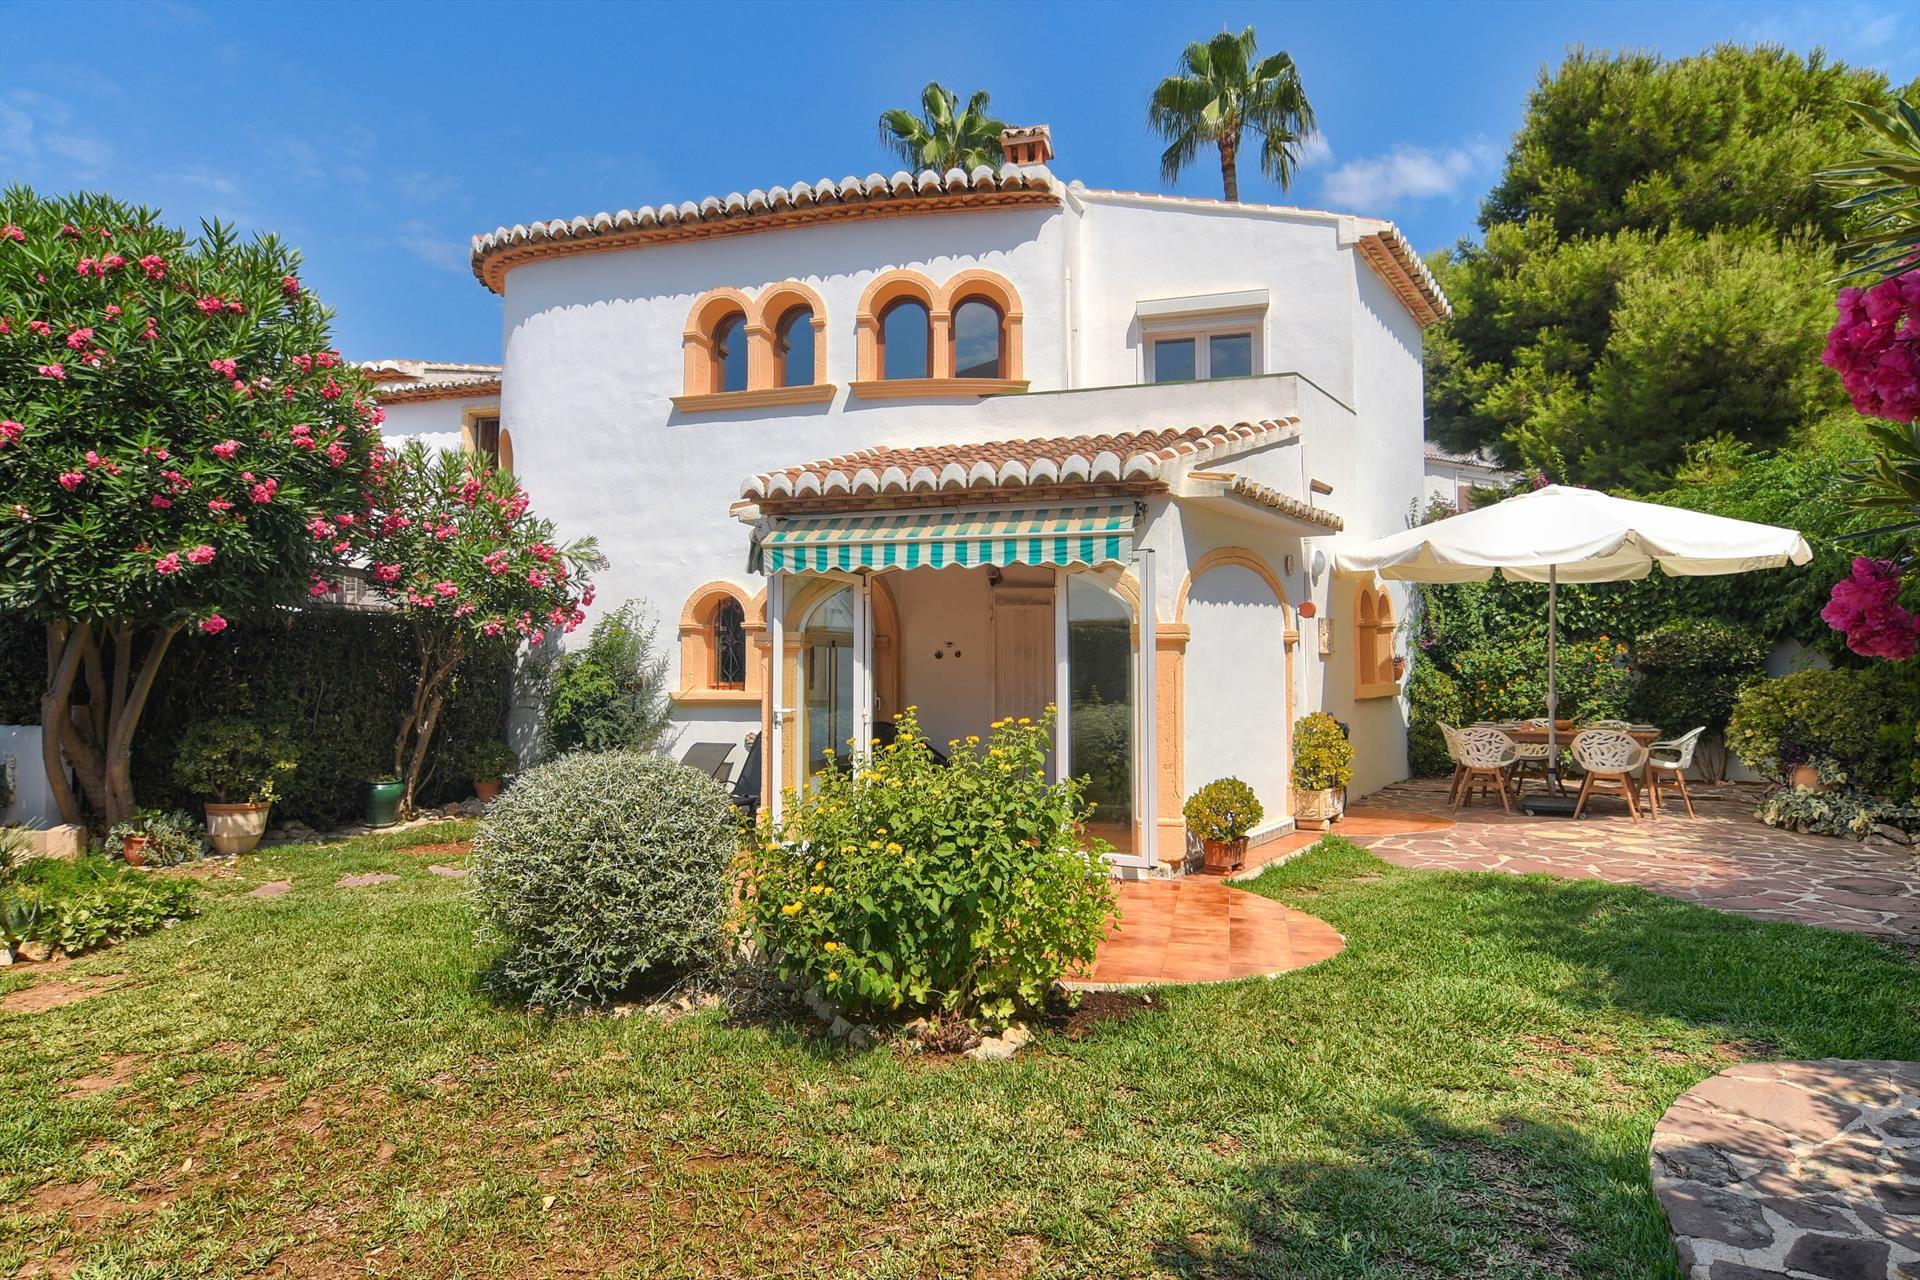 Joleipa 4 pax,Beautiful and comfortable apartment in Javea, on the Costa Blanca, Spain  with communal pool for 4 persons.....